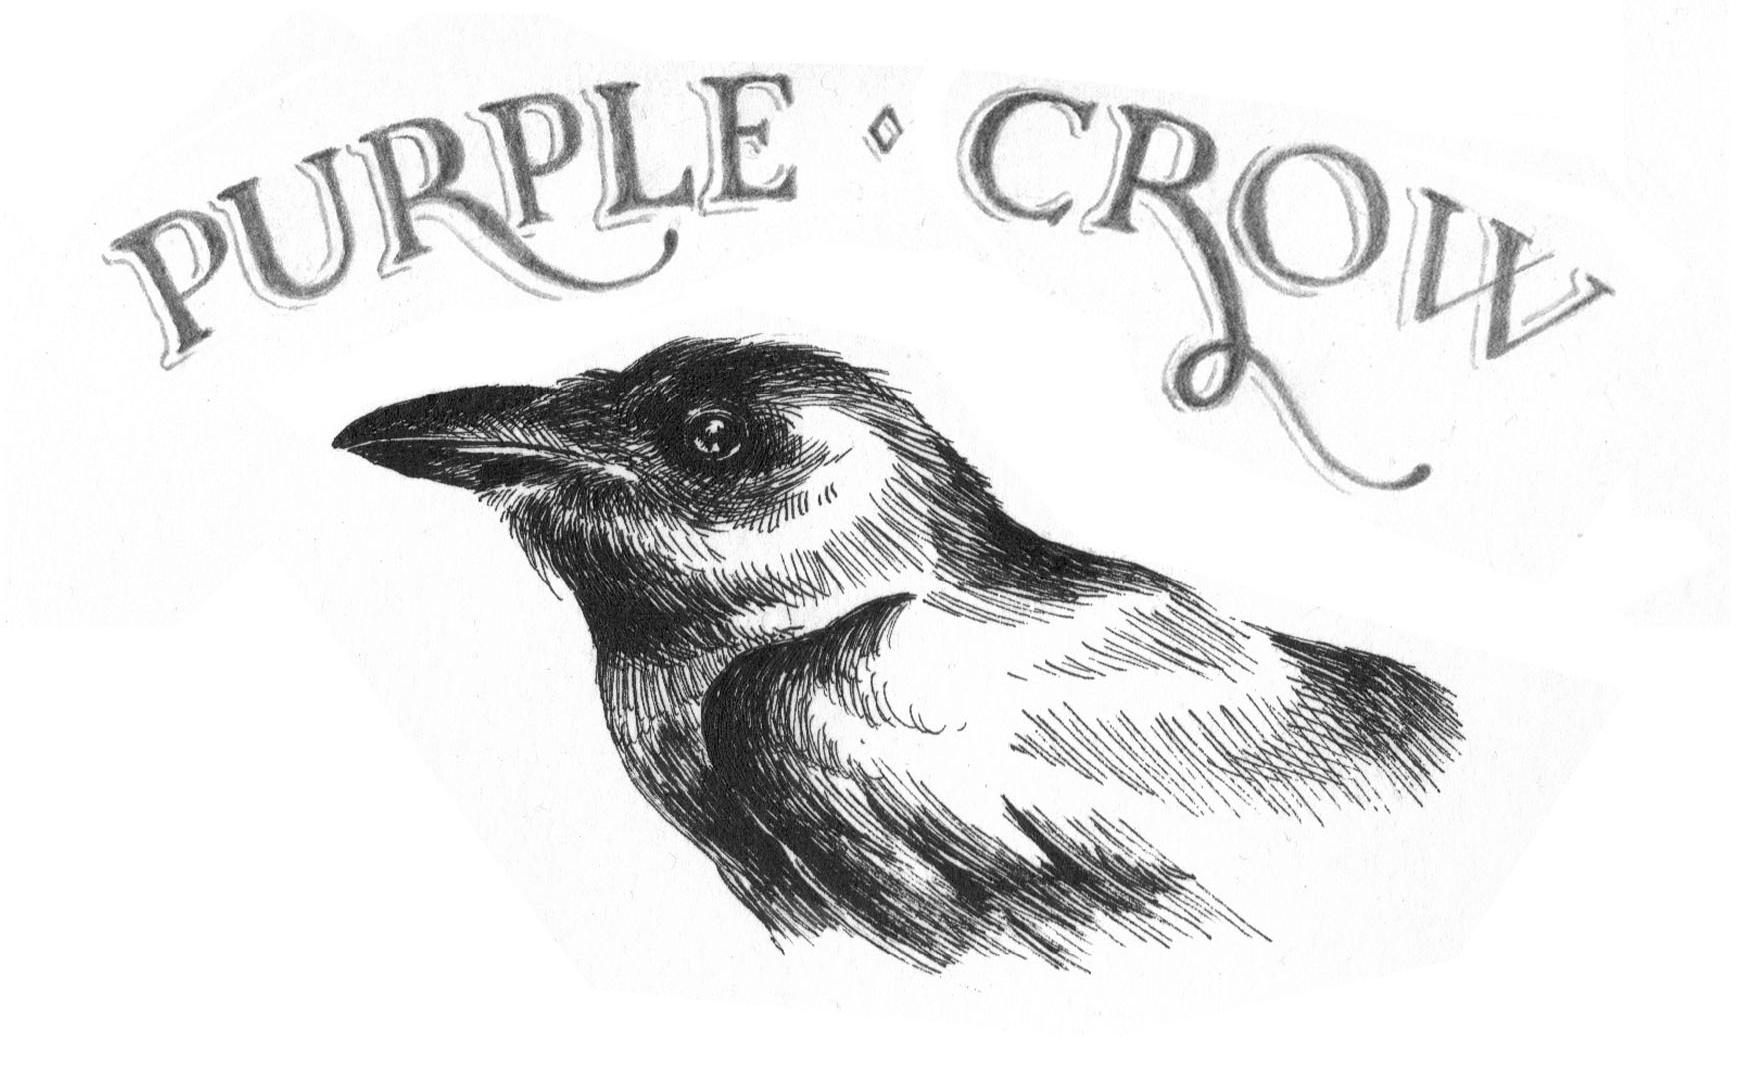 Purple Crow Permaculture - image 5 - student project